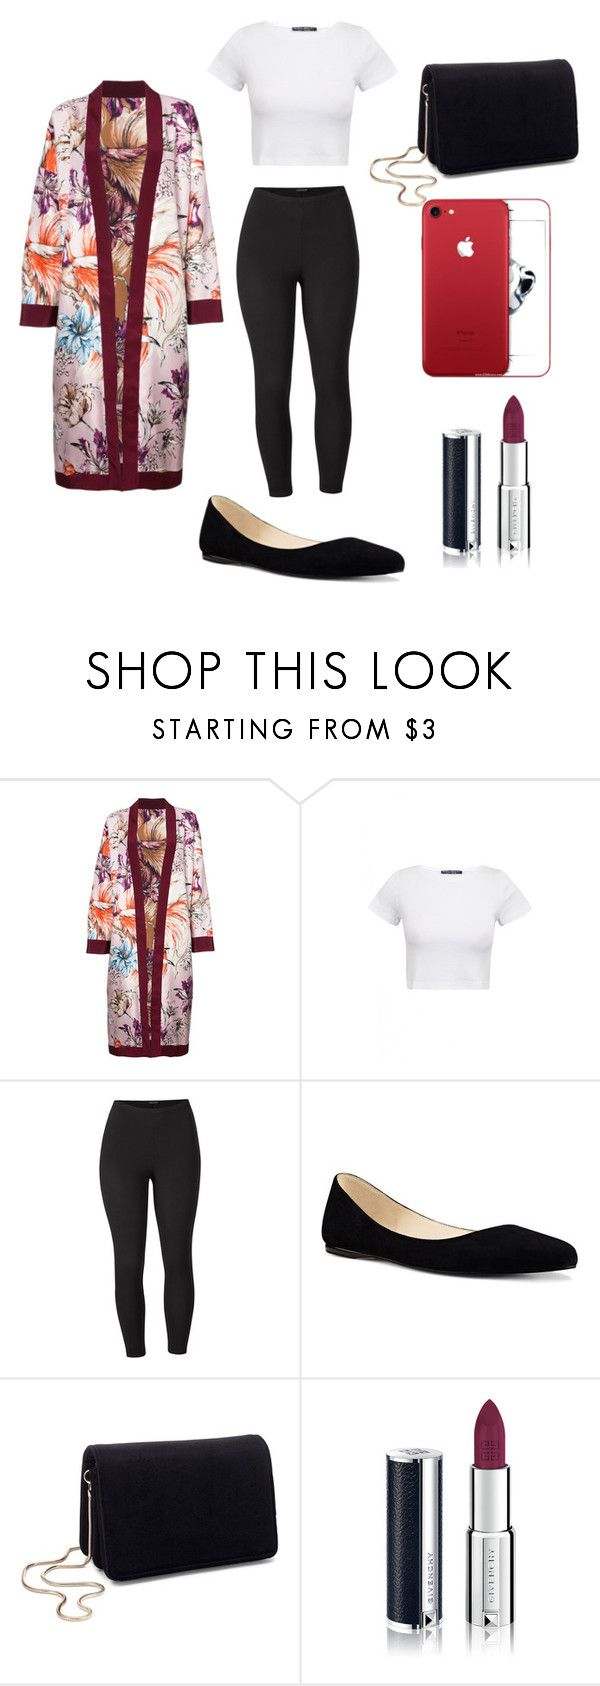 """Night out with friends"" by fleurrouge ❤ liked on Polyvore featuring FAUSTO PUGLISI, Venus, Nine West, Miss Selfridge, Givenchy and plus size clothing"